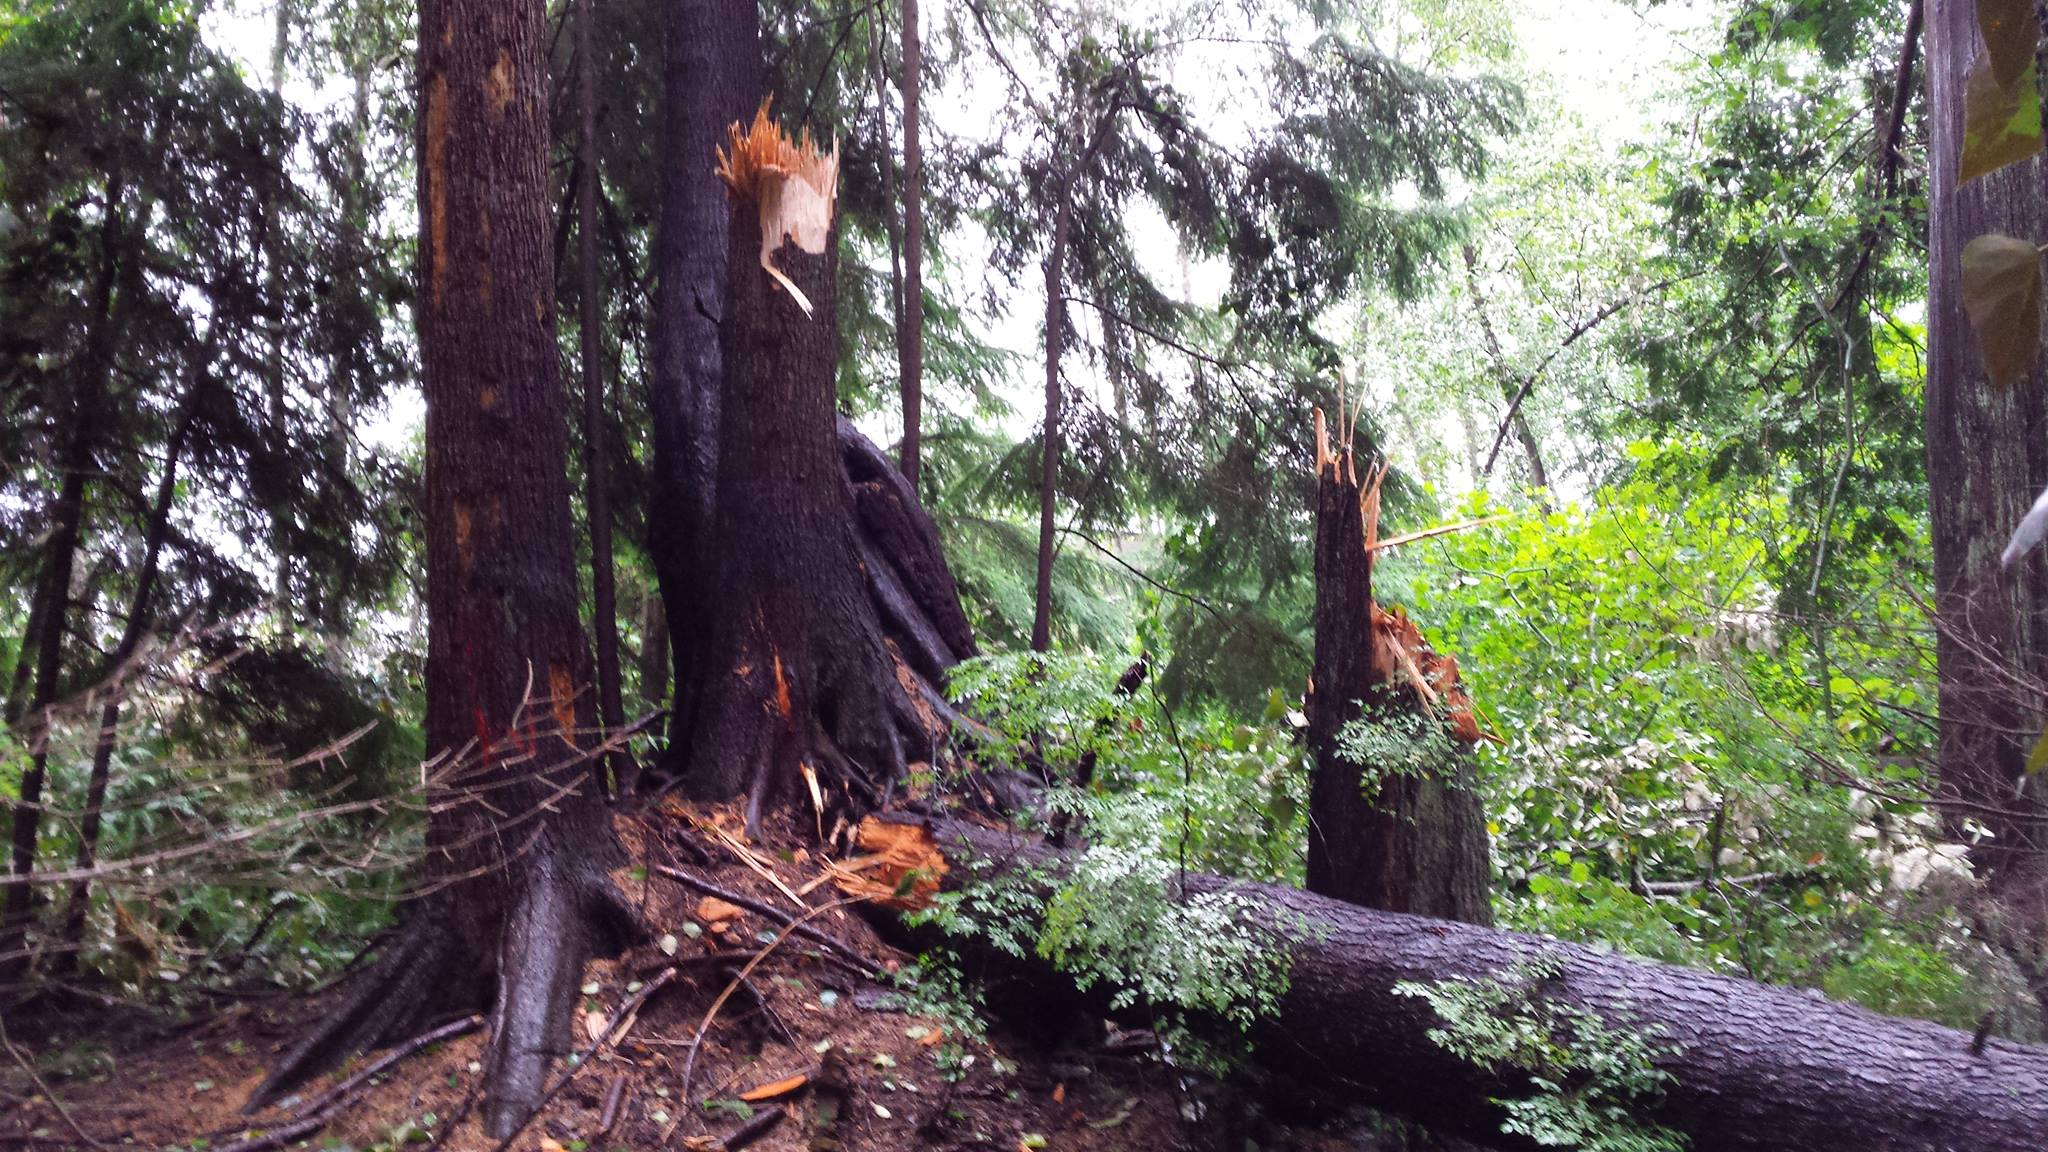 I took this photo 4 days after the storm... trees just snapped like match sticks.